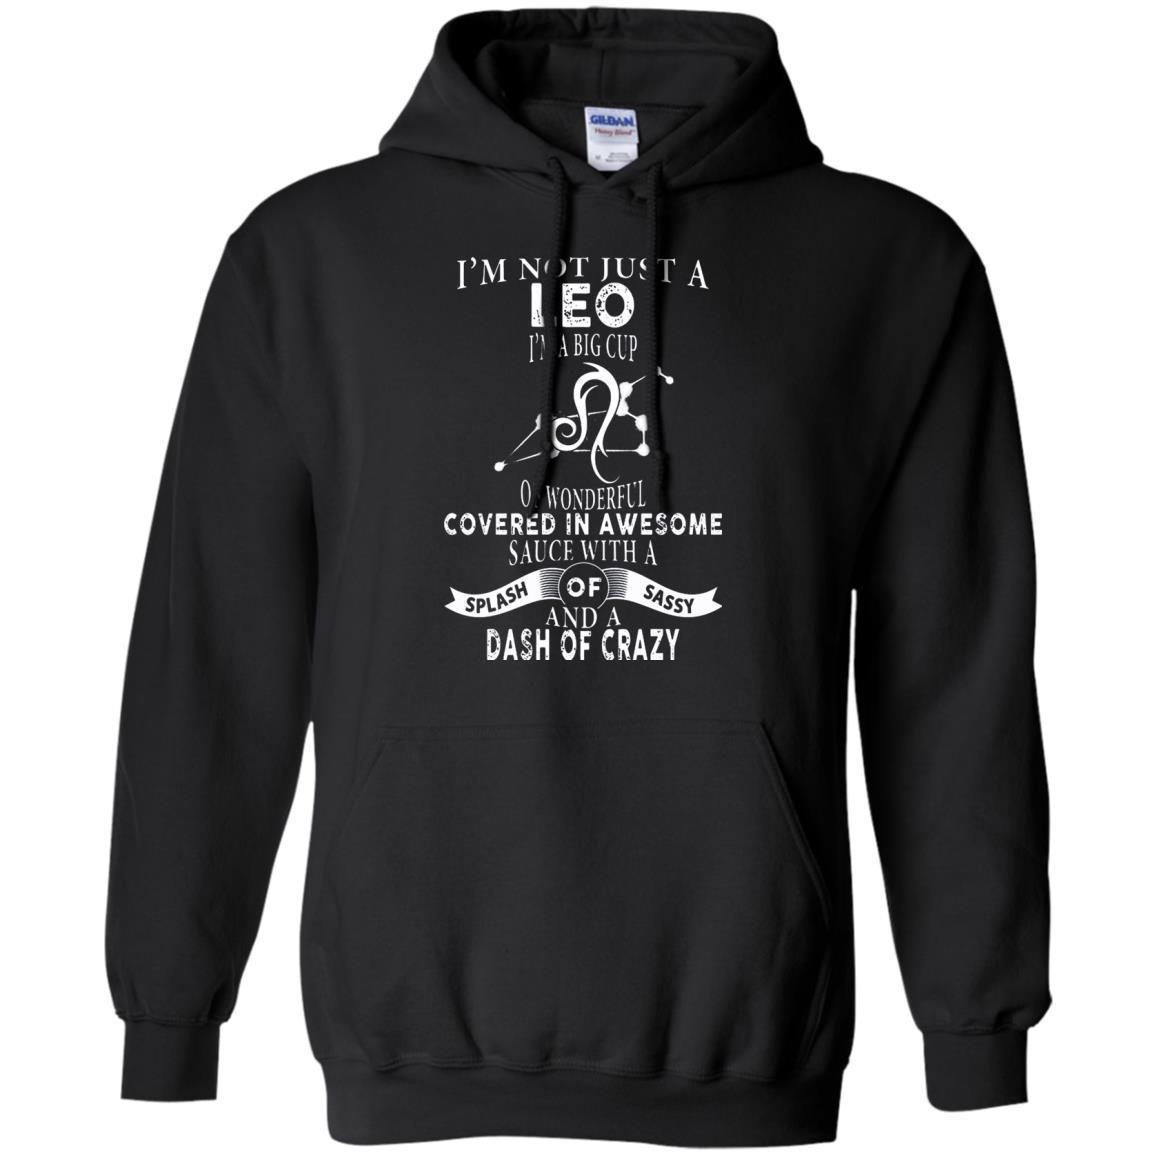 I'm Not Just A Leo Zodiac Signs Hoodie